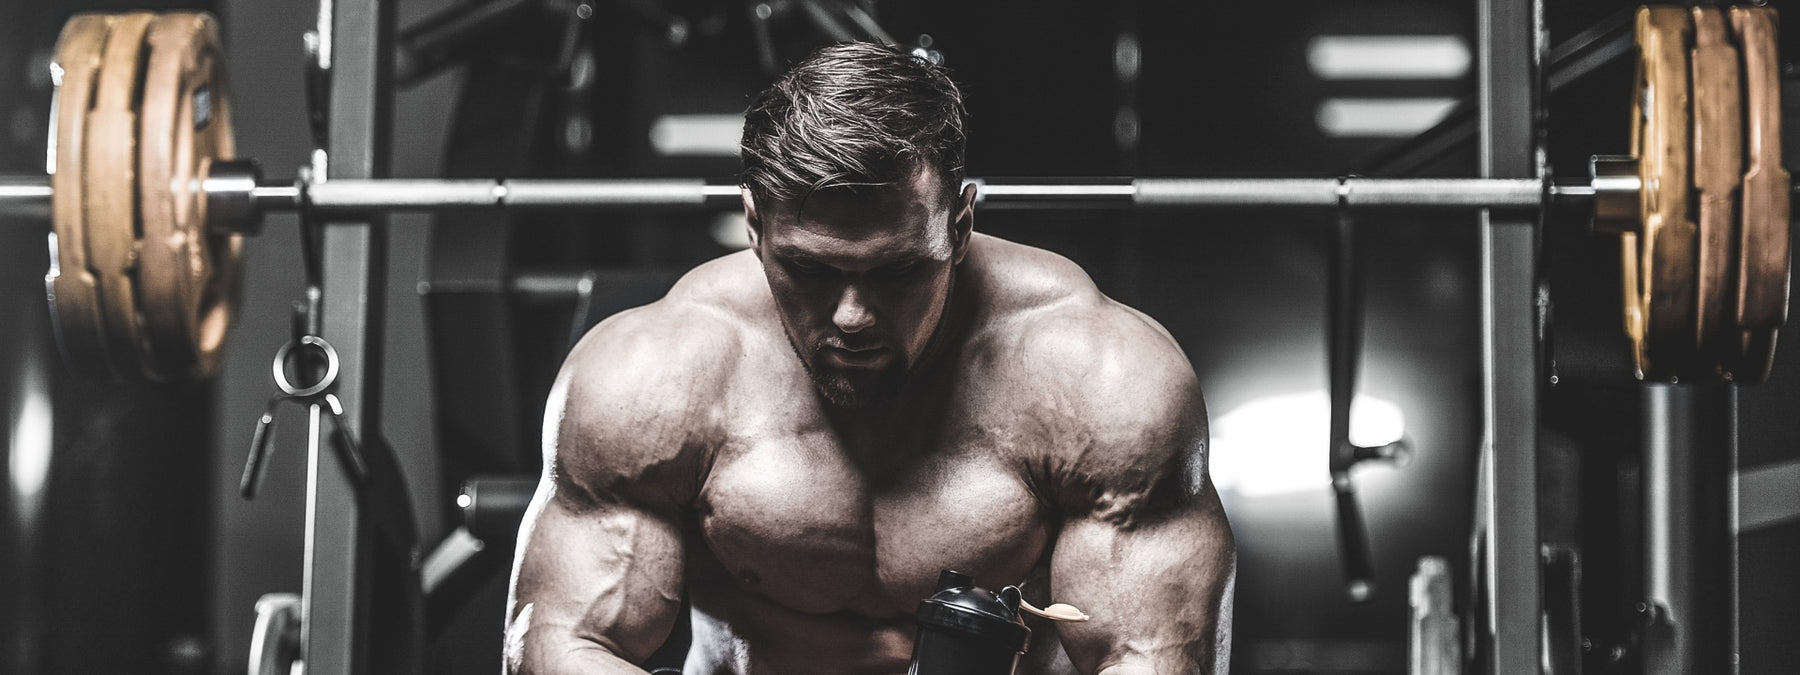 7 Habits Of Highly Effective Lifters